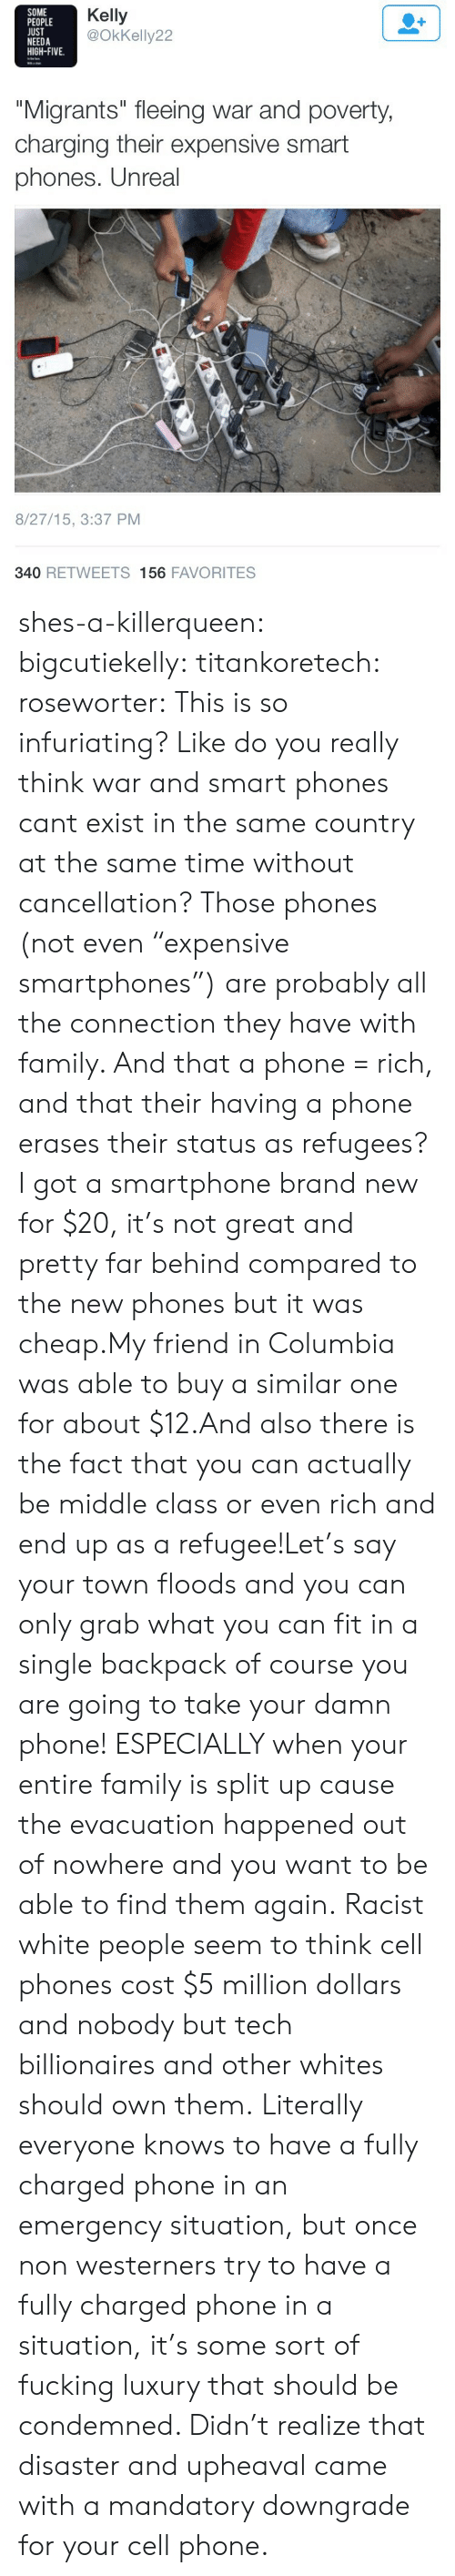 "Columbia: SOME  PEOPLE  UST  NEEDA  HIGH-FIVE.  Kelly  @OkKelly22  ""Migrants"" fleeing war and poverty  charging their expensive smart  phones. Unreal  8/27/15, 3:37 PM  340 RETWEETS 156 FAVORITES shes-a-killerqueen:  bigcutiekelly:  titankoretech:  roseworter:  This is so infuriating? Like do you really think war and smart phones cant exist in the same country at the same time without cancellation? Those phones (not even ""expensive smartphones"") are probably all the connection they have with family. And that a phone = rich, and that their having a phone erases their status as refugees?  I got a smartphone brand new for $20, it's not great and pretty far behind compared to the new phones but it was cheap.My friend in Columbia was able to buy a similar one for about $12.And also there is the fact that you can actually be middle class or even rich and end up as a refugee!Let's say your town floods and you can only grab what you can fit in a single backpack of course you are going to take your damn phone! ESPECIALLY when your entire family is split up cause the evacuation happened out of nowhere and you want to be able to find them again.  Racist white people seem to think cell phones cost $5 million dollars and nobody but tech billionaires and other whites should own them.   Literally everyone knows to have a fully charged phone in an emergency situation, but once non westerners try to have a fully charged phone in a situation, it's some sort of fucking luxury that should be condemned. Didn't realize that disaster and upheaval came with a mandatory downgrade for your cell phone."